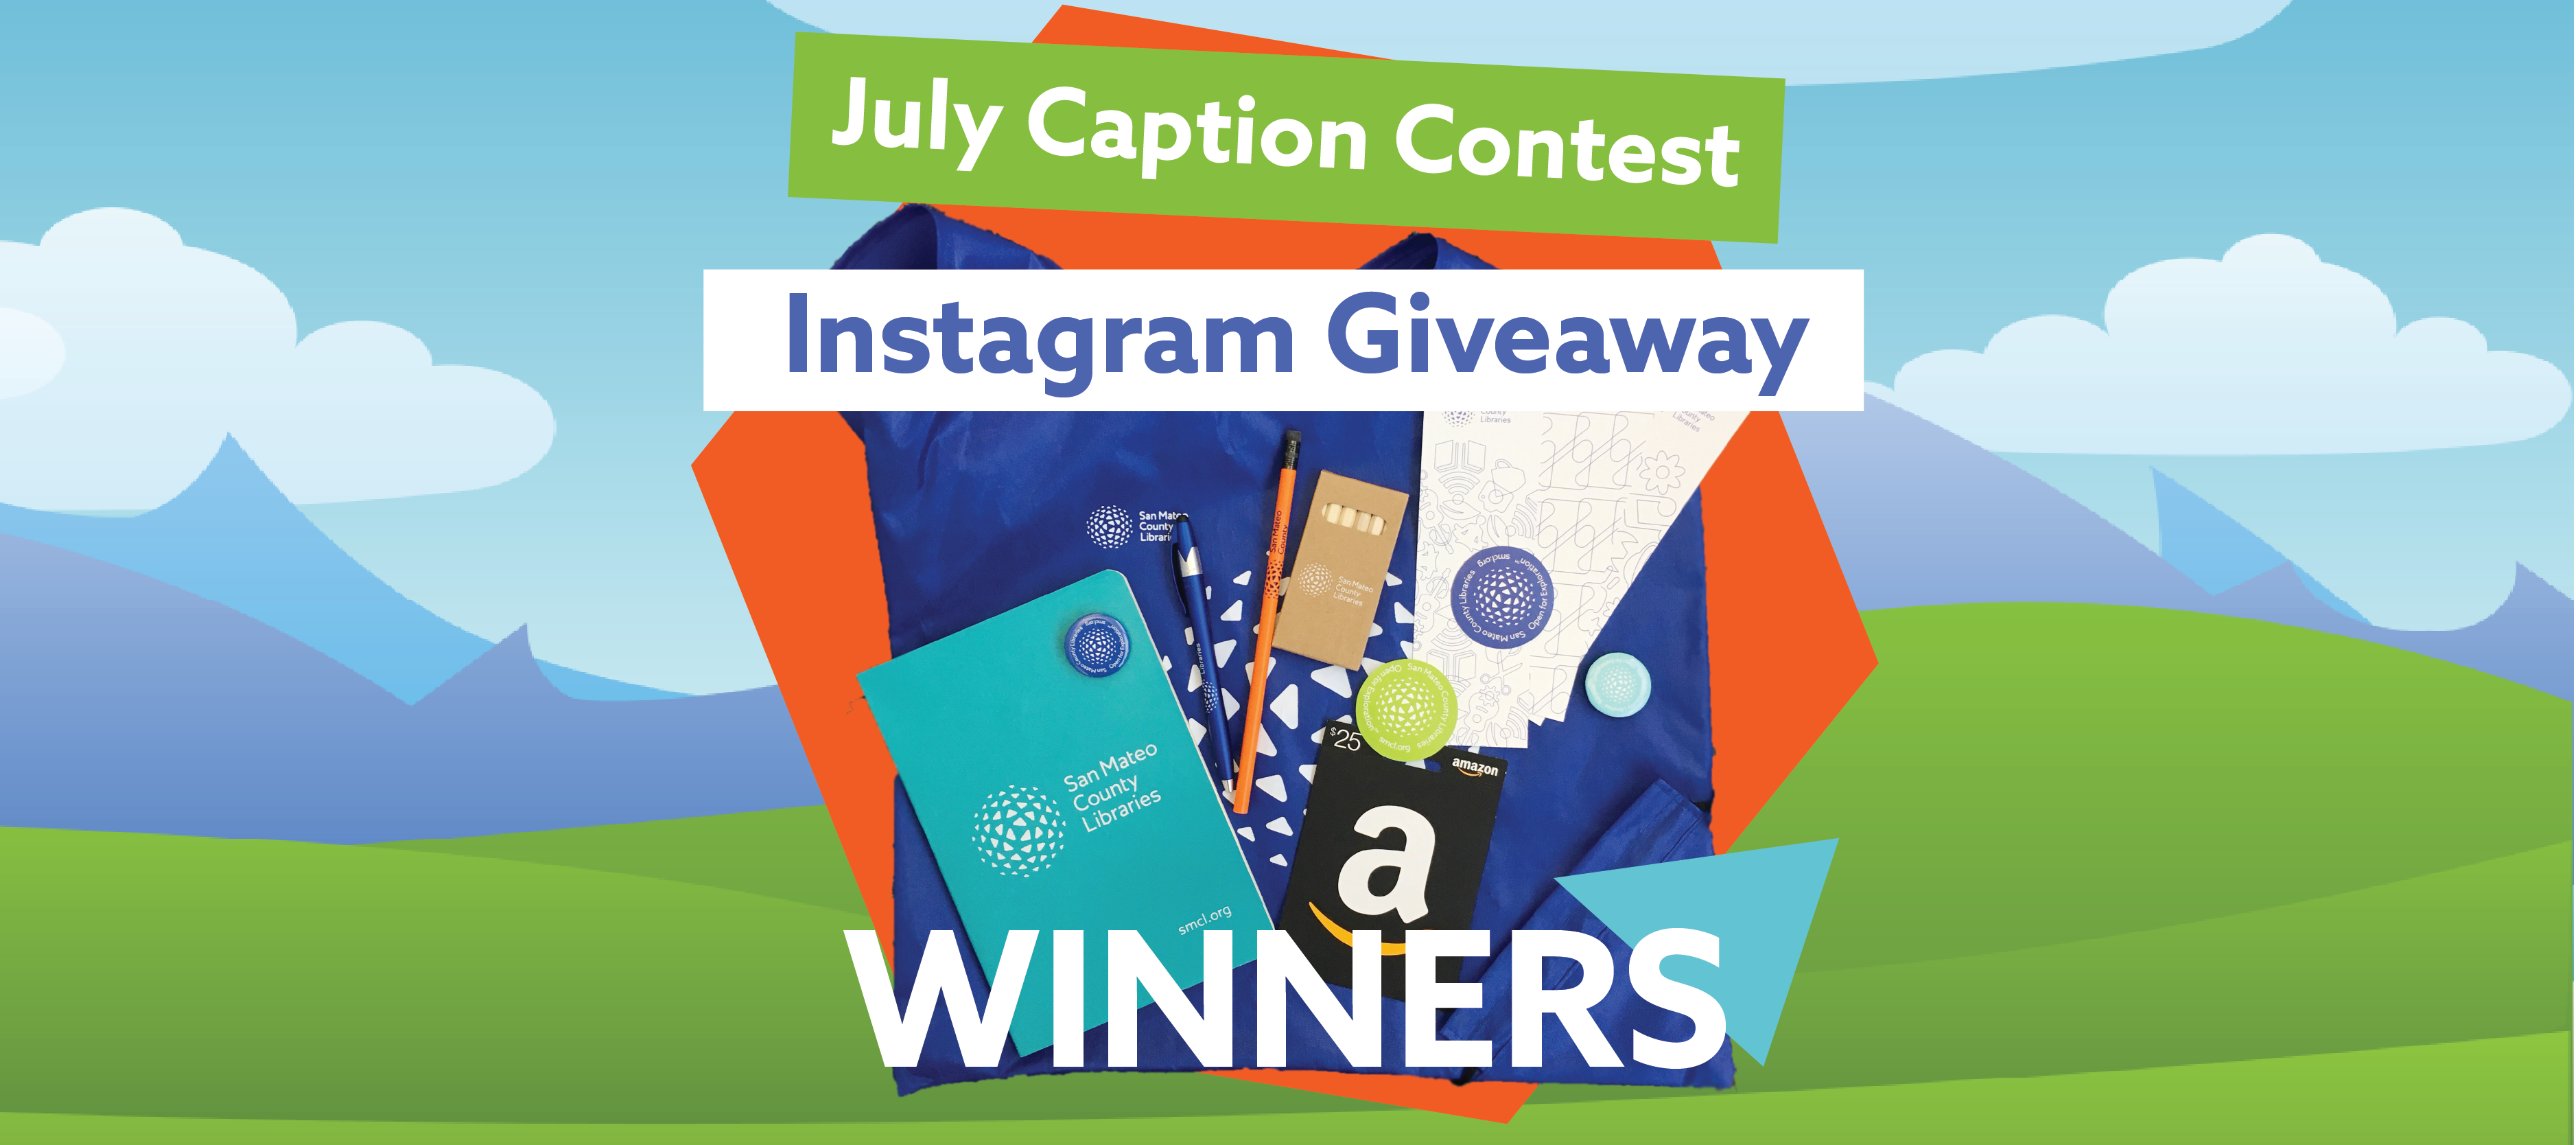 July Caption Contest Instagram Giveaway Winners